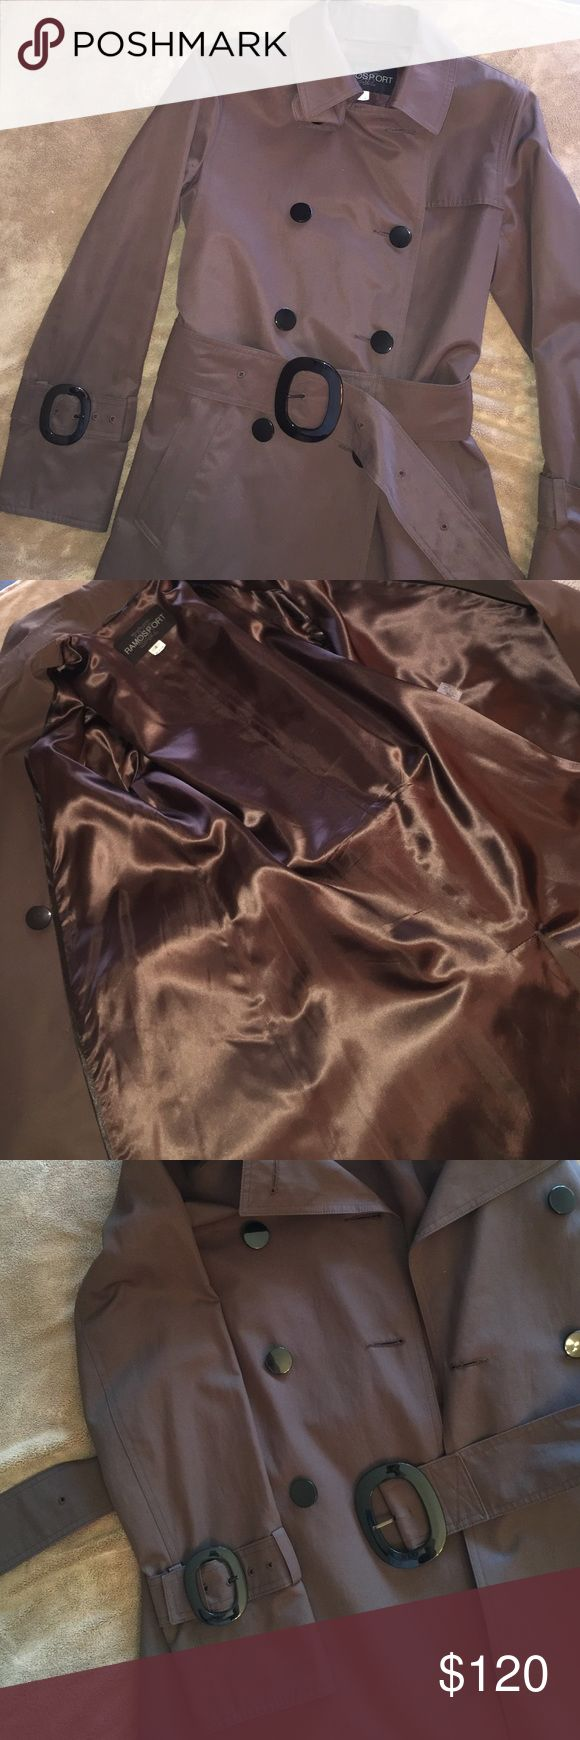 Brand new, Ramos Sport, Chocolate Brown trench. Stunning chocolate brown trench coat with black gloss buttons/belt buckle. Two pockets. Brand New, never been worn. Bought from Nordstroms in Chicago a couple of years ago. Perfect for Fall! Ramos Sport  Jackets & Coats Trench Coats